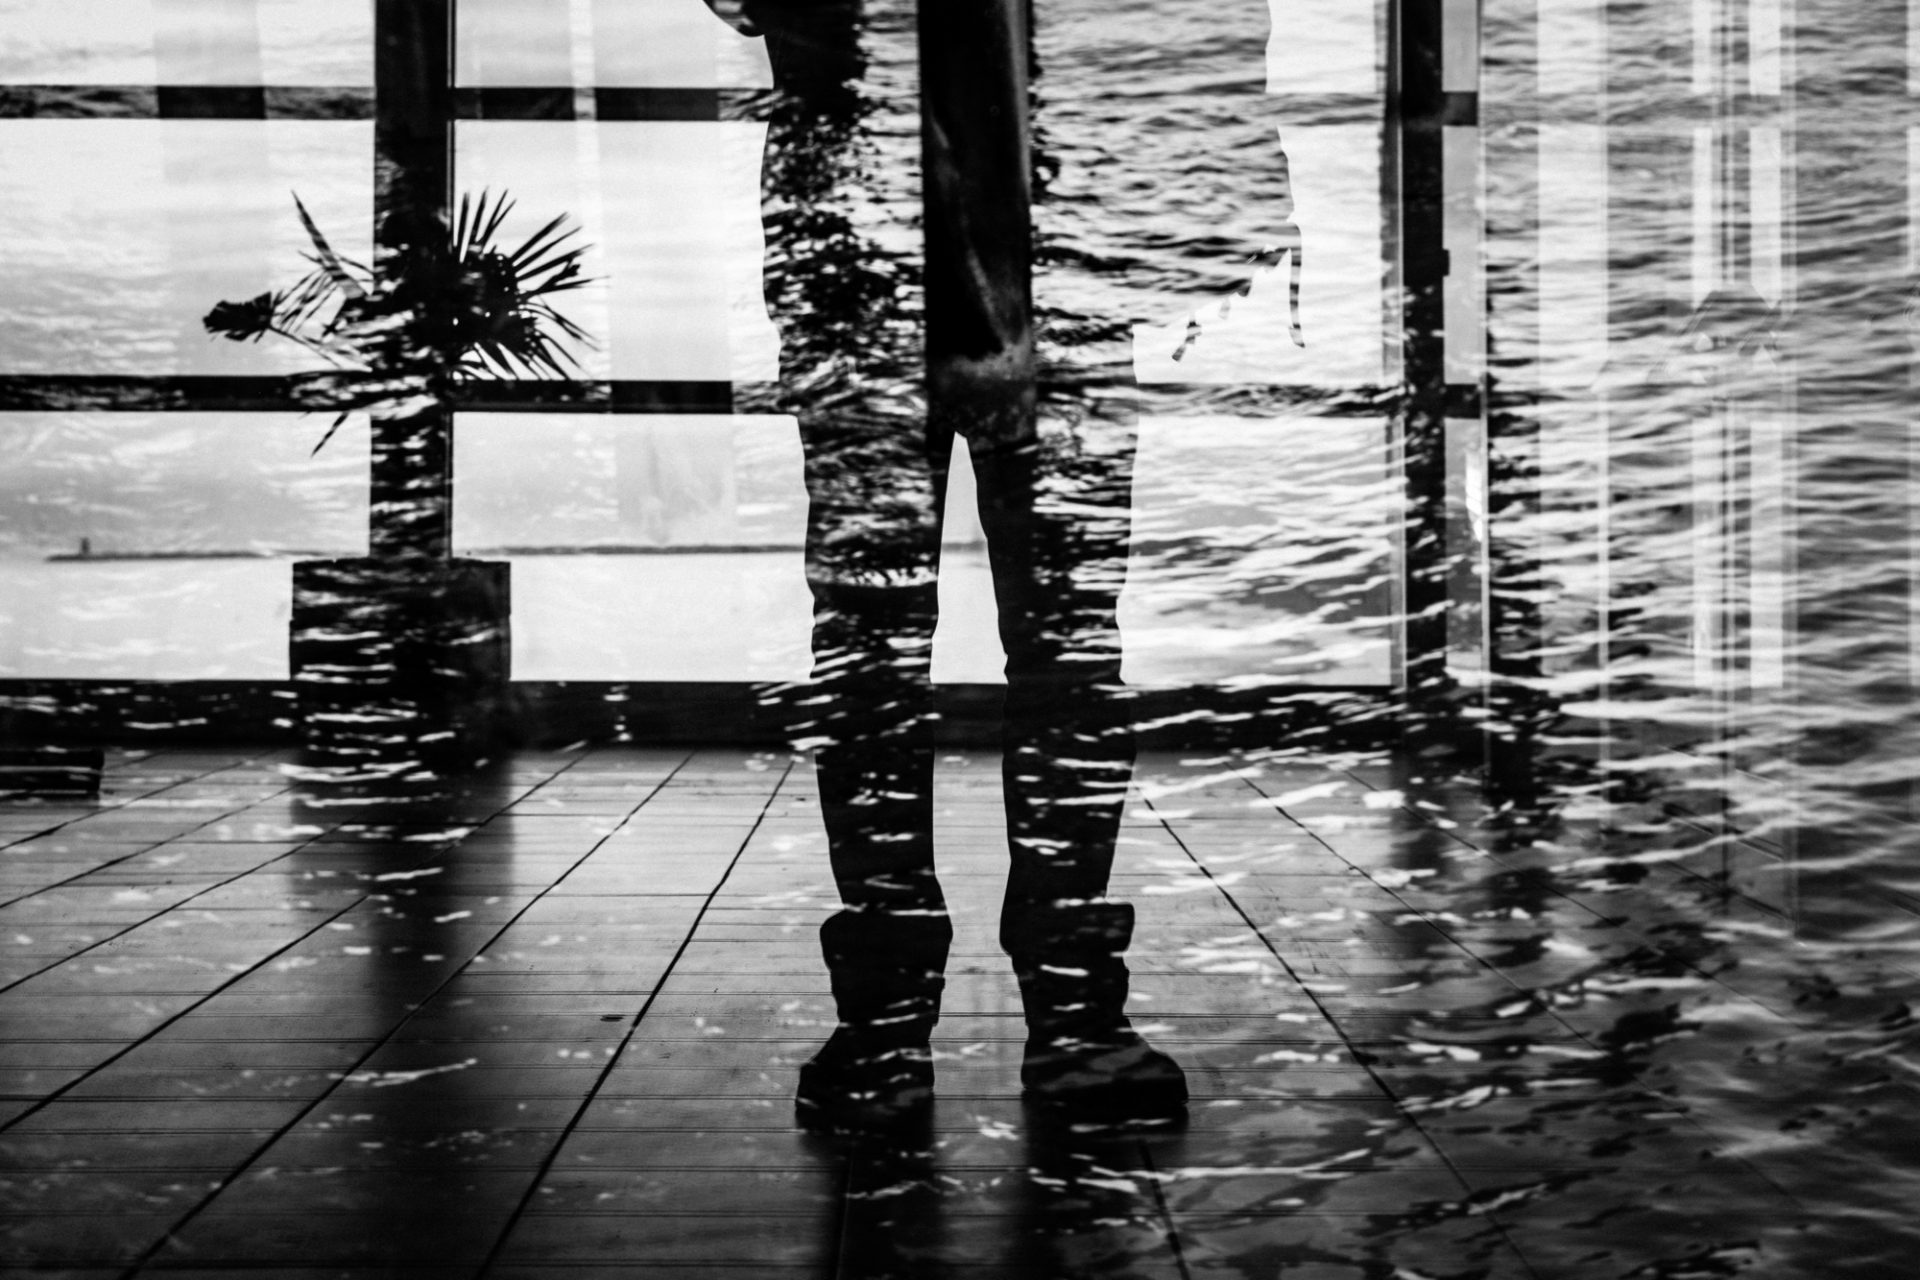 Reflections Series B&W